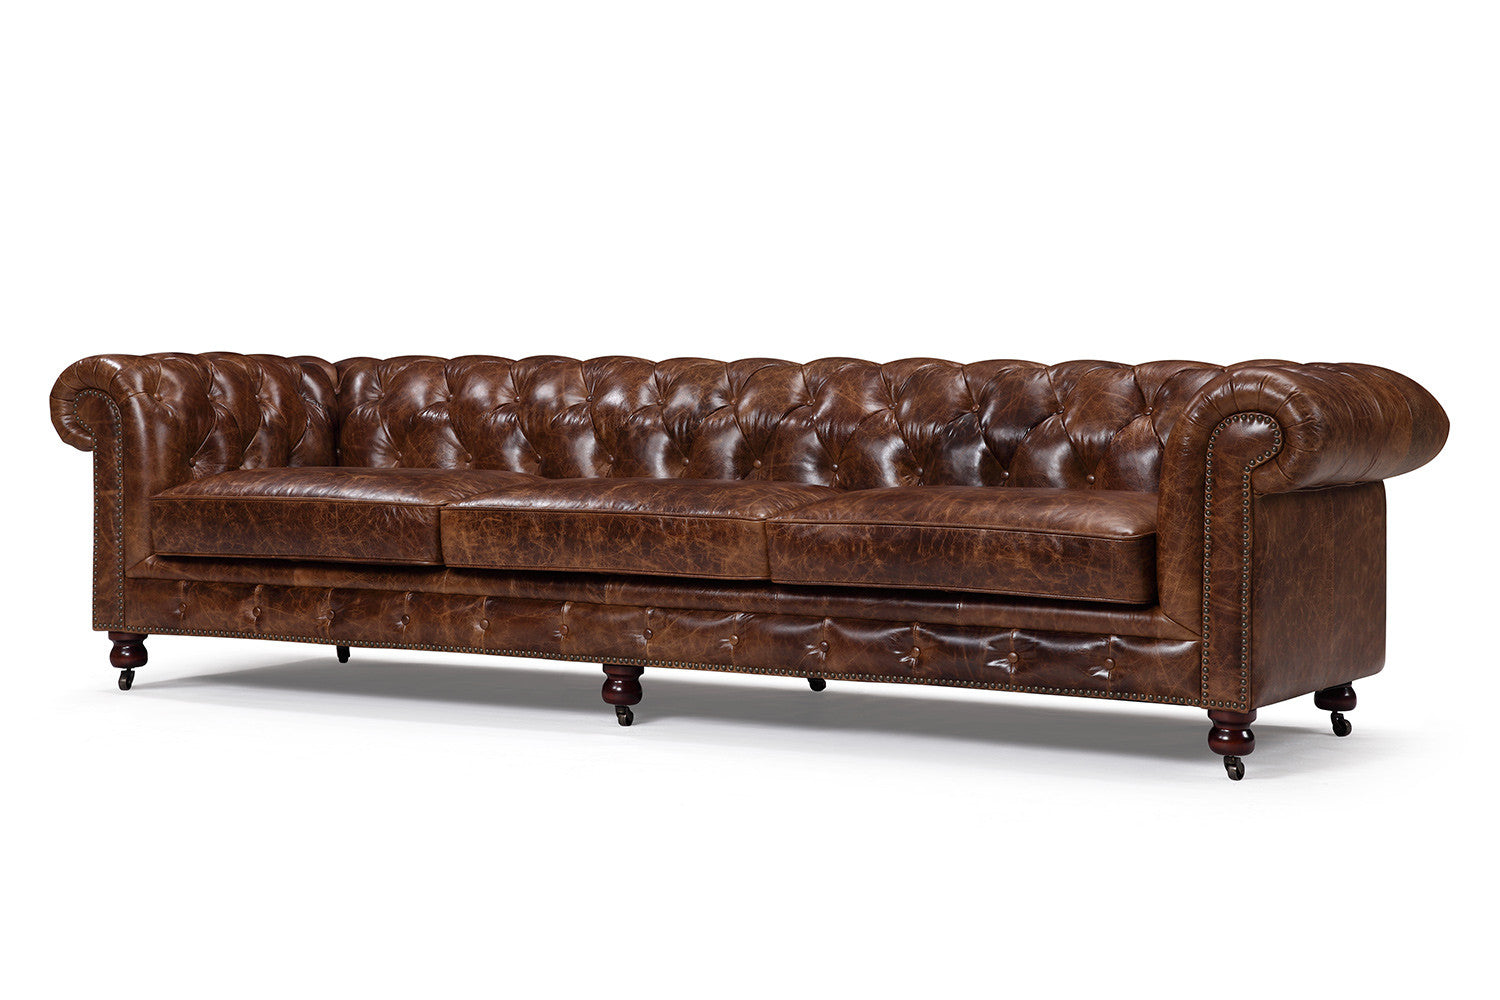 The Kensington Large Chesterfield Sofa | Rose and Moore